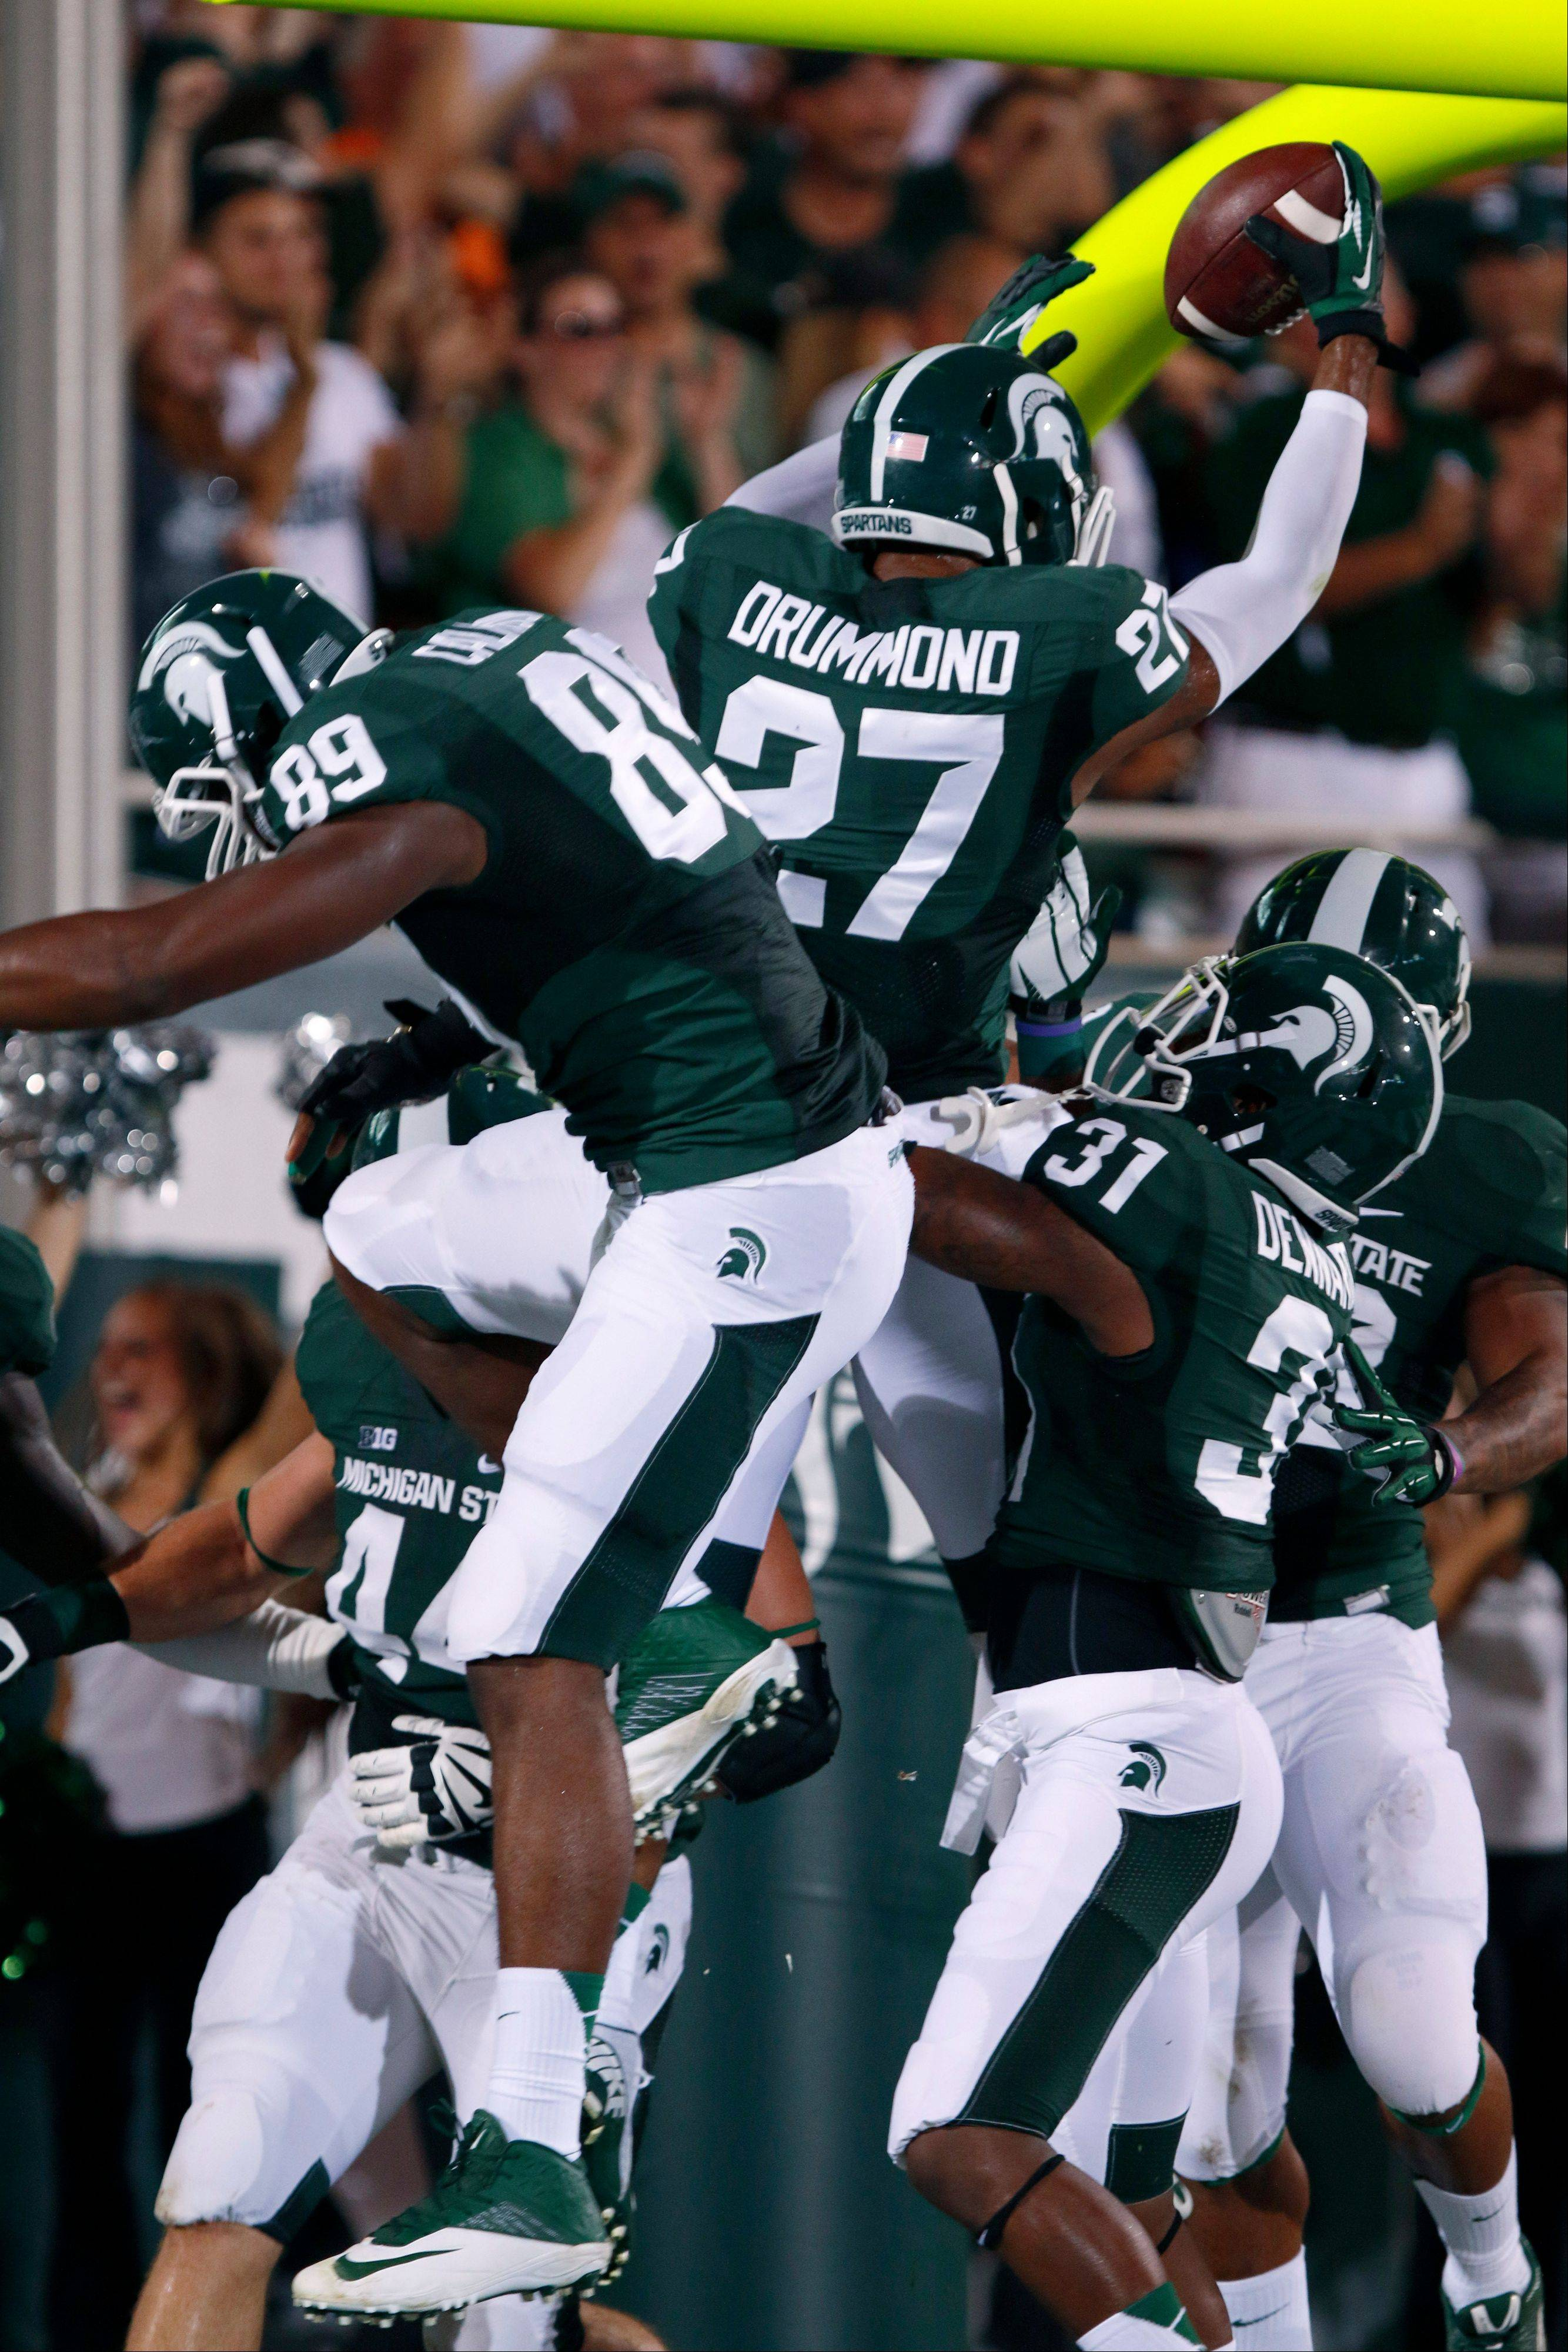 Michigan State�s Kurtis Drummond (27), Shilique Calhoun (89) and Darqueze Dennard (31) celebrate Drummond�s interception return for a touchdown during the first quarter against Western Michigan on Friday in East Lansing, Mich. The ball was intercepted by Jairus Jones and lateraled to Drummond for the score.